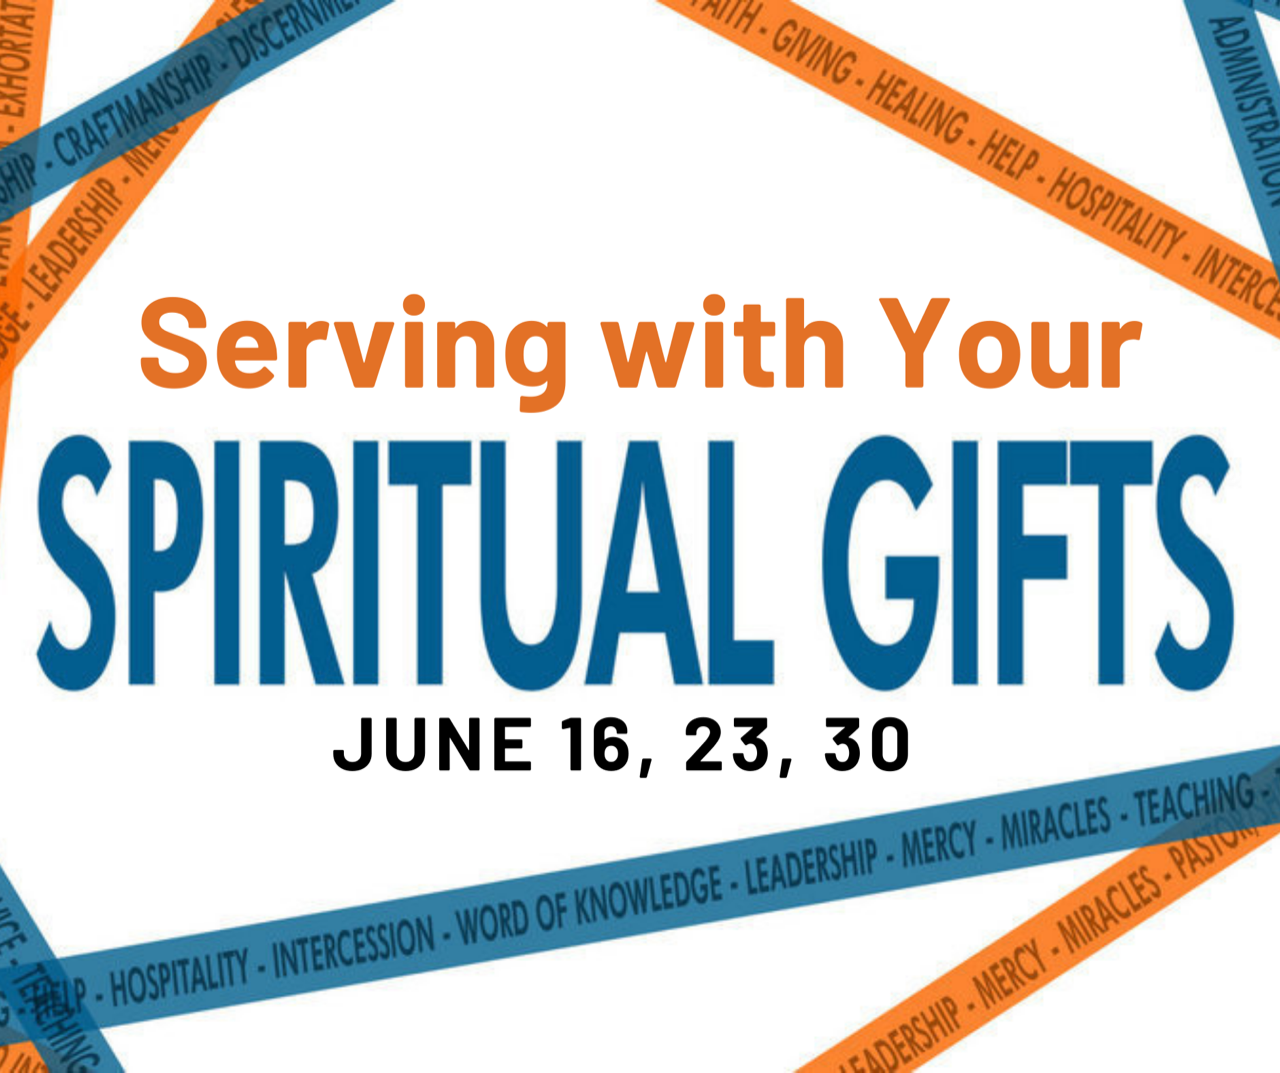 Serving With Your Spiritual Gifts